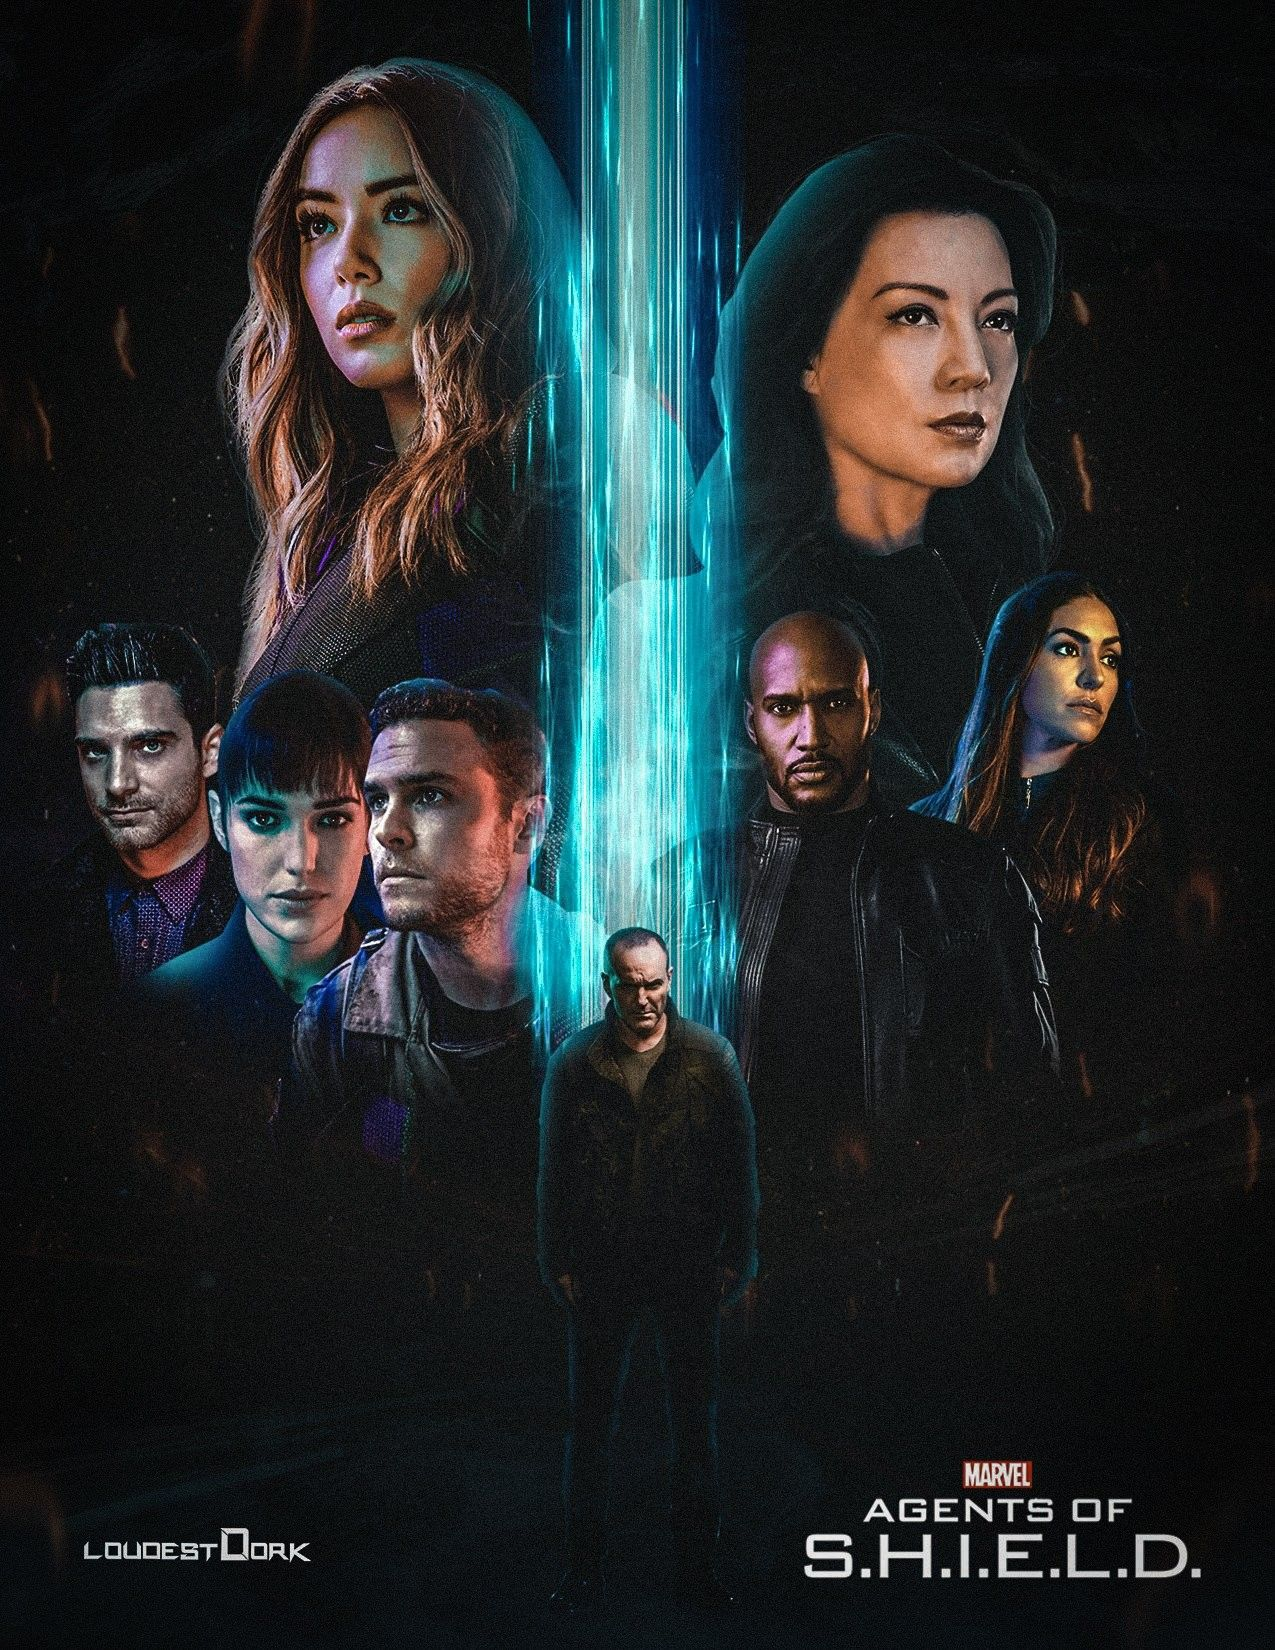 Agents of S.H.I.E.L.D. : Season 6 | Agents of shield may, Agents ...